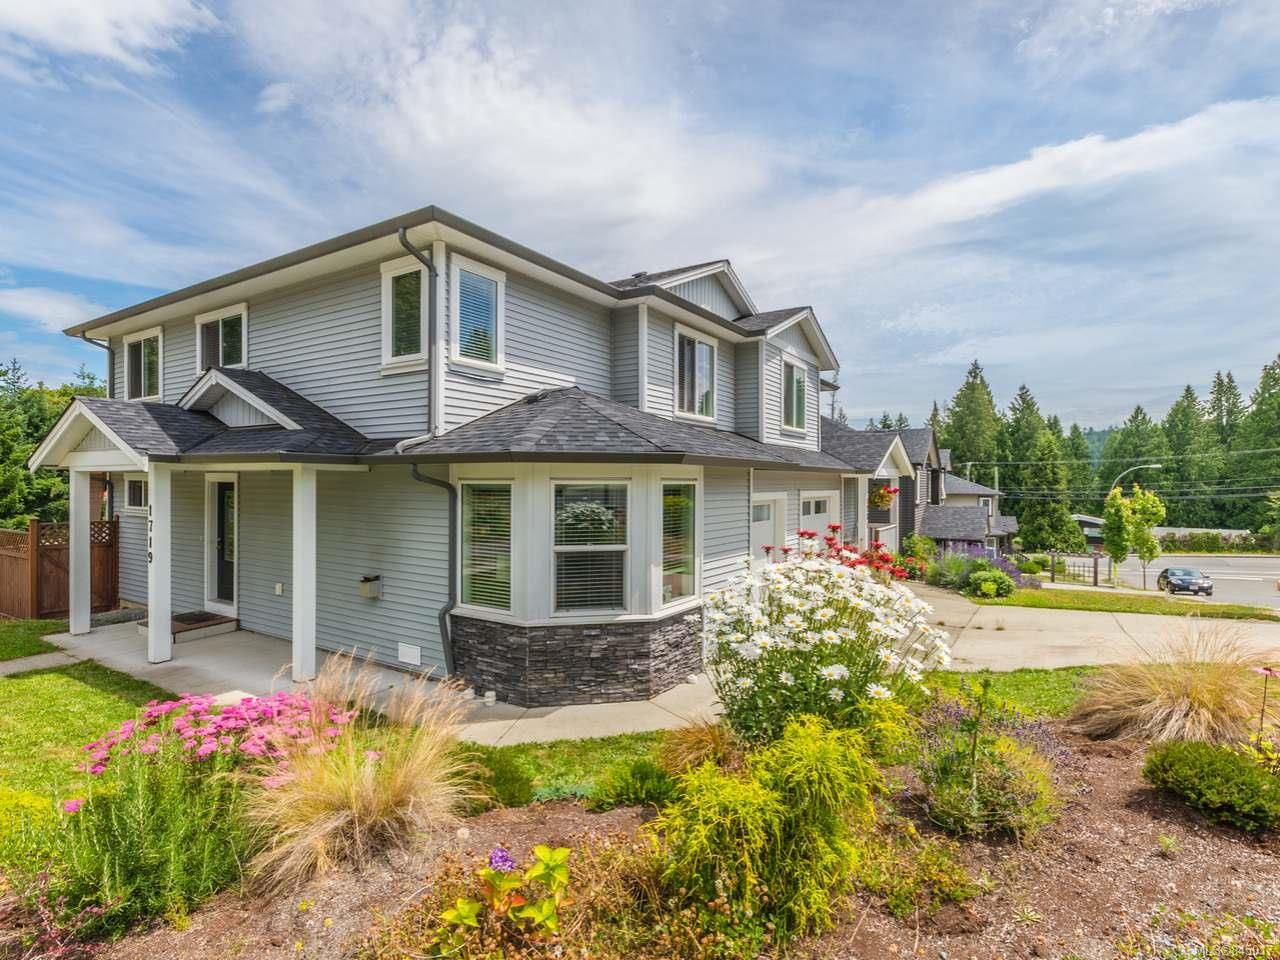 Main Photo: 1719 Trevors Rd in NANAIMO: Na Chase River Half Duplex for sale (Nanaimo)  : MLS®# 845017